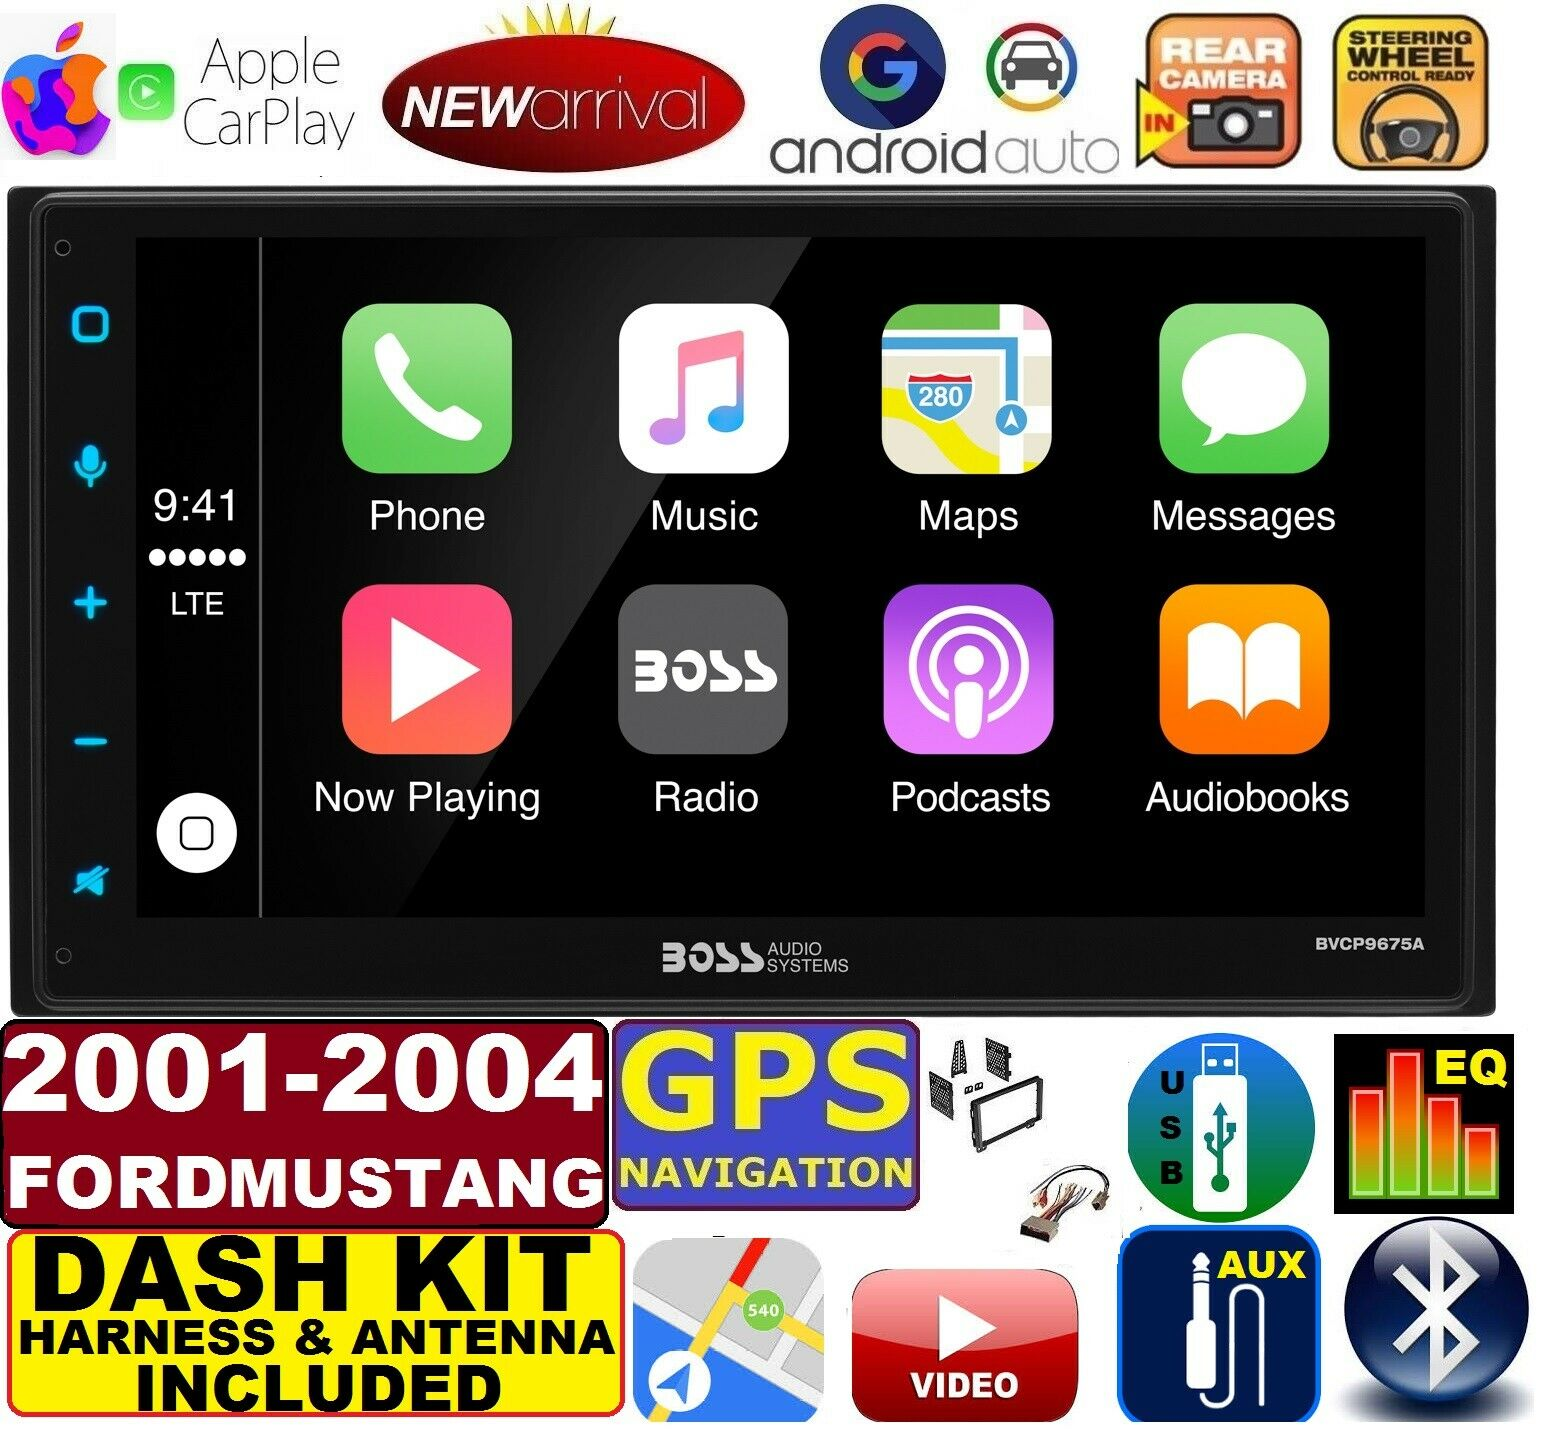 hight resolution of 01 02 03 04 ford mustang apple carplay navigation works with iphone am fm usb bluetooth car radio stereo pkg incl vehicle hardware dash kit wire